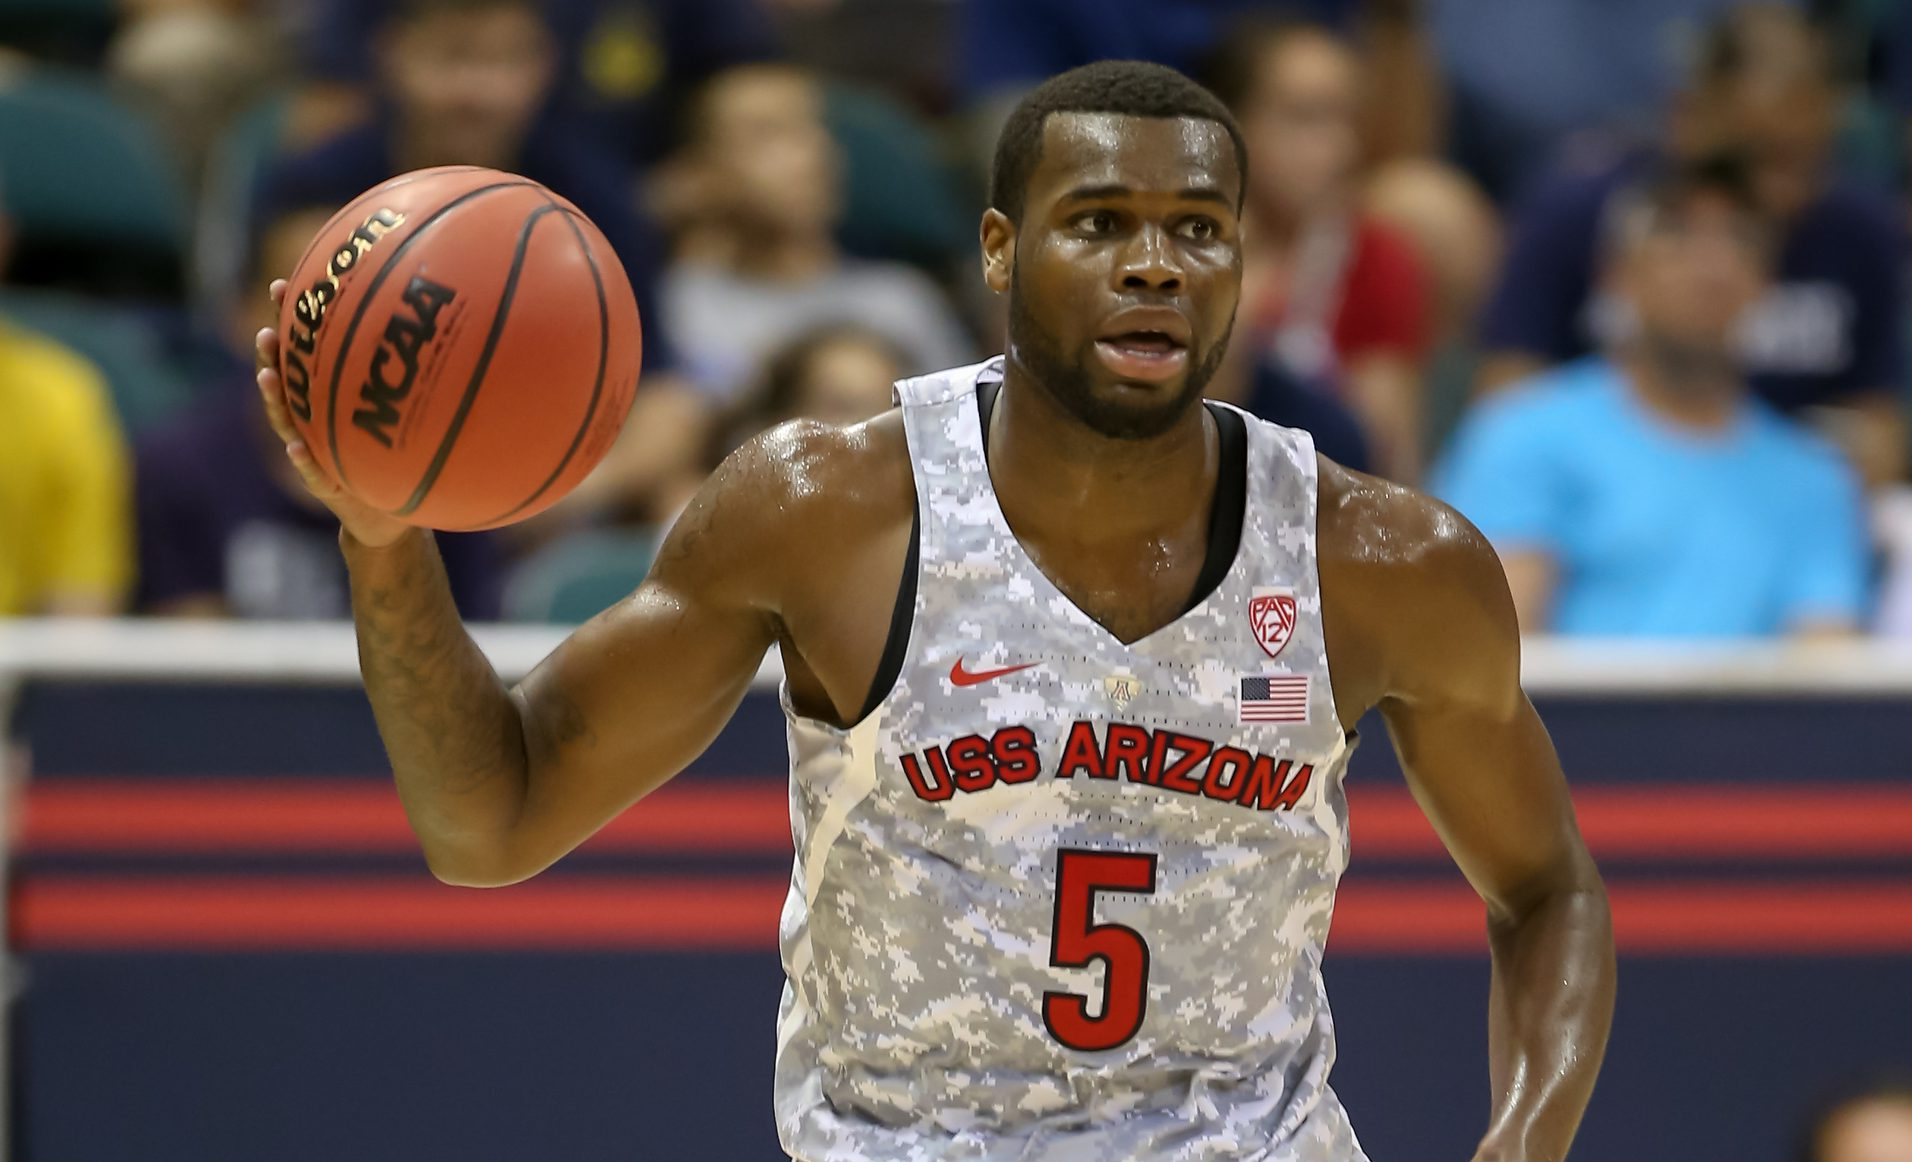 HONOLULU, HI - NOVEMBER 11: Kadeem Allen #5 of the Arizona Wildcats dribbles the ball up court during the first half of the Armed Forces Classic at the Stan Sheriff Center on November 11, 2016 in Honolulu, Hawaii. (Photo by Darryl Oumi/Getty Images)